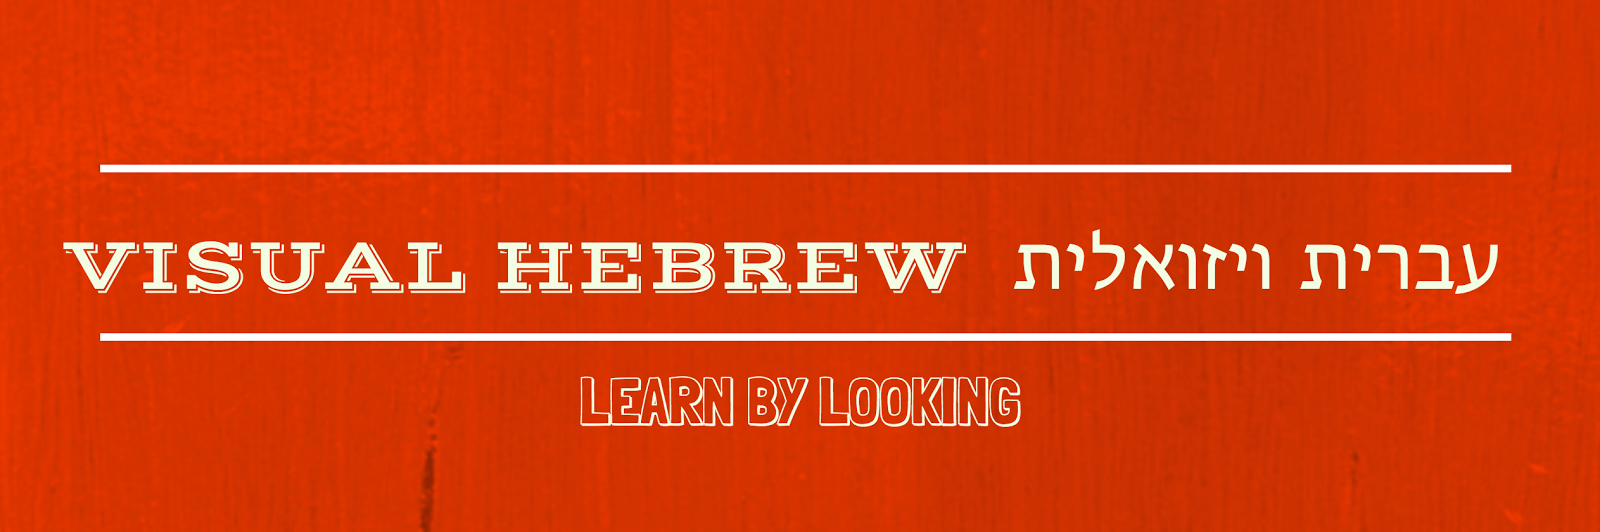 Visual Hebrew